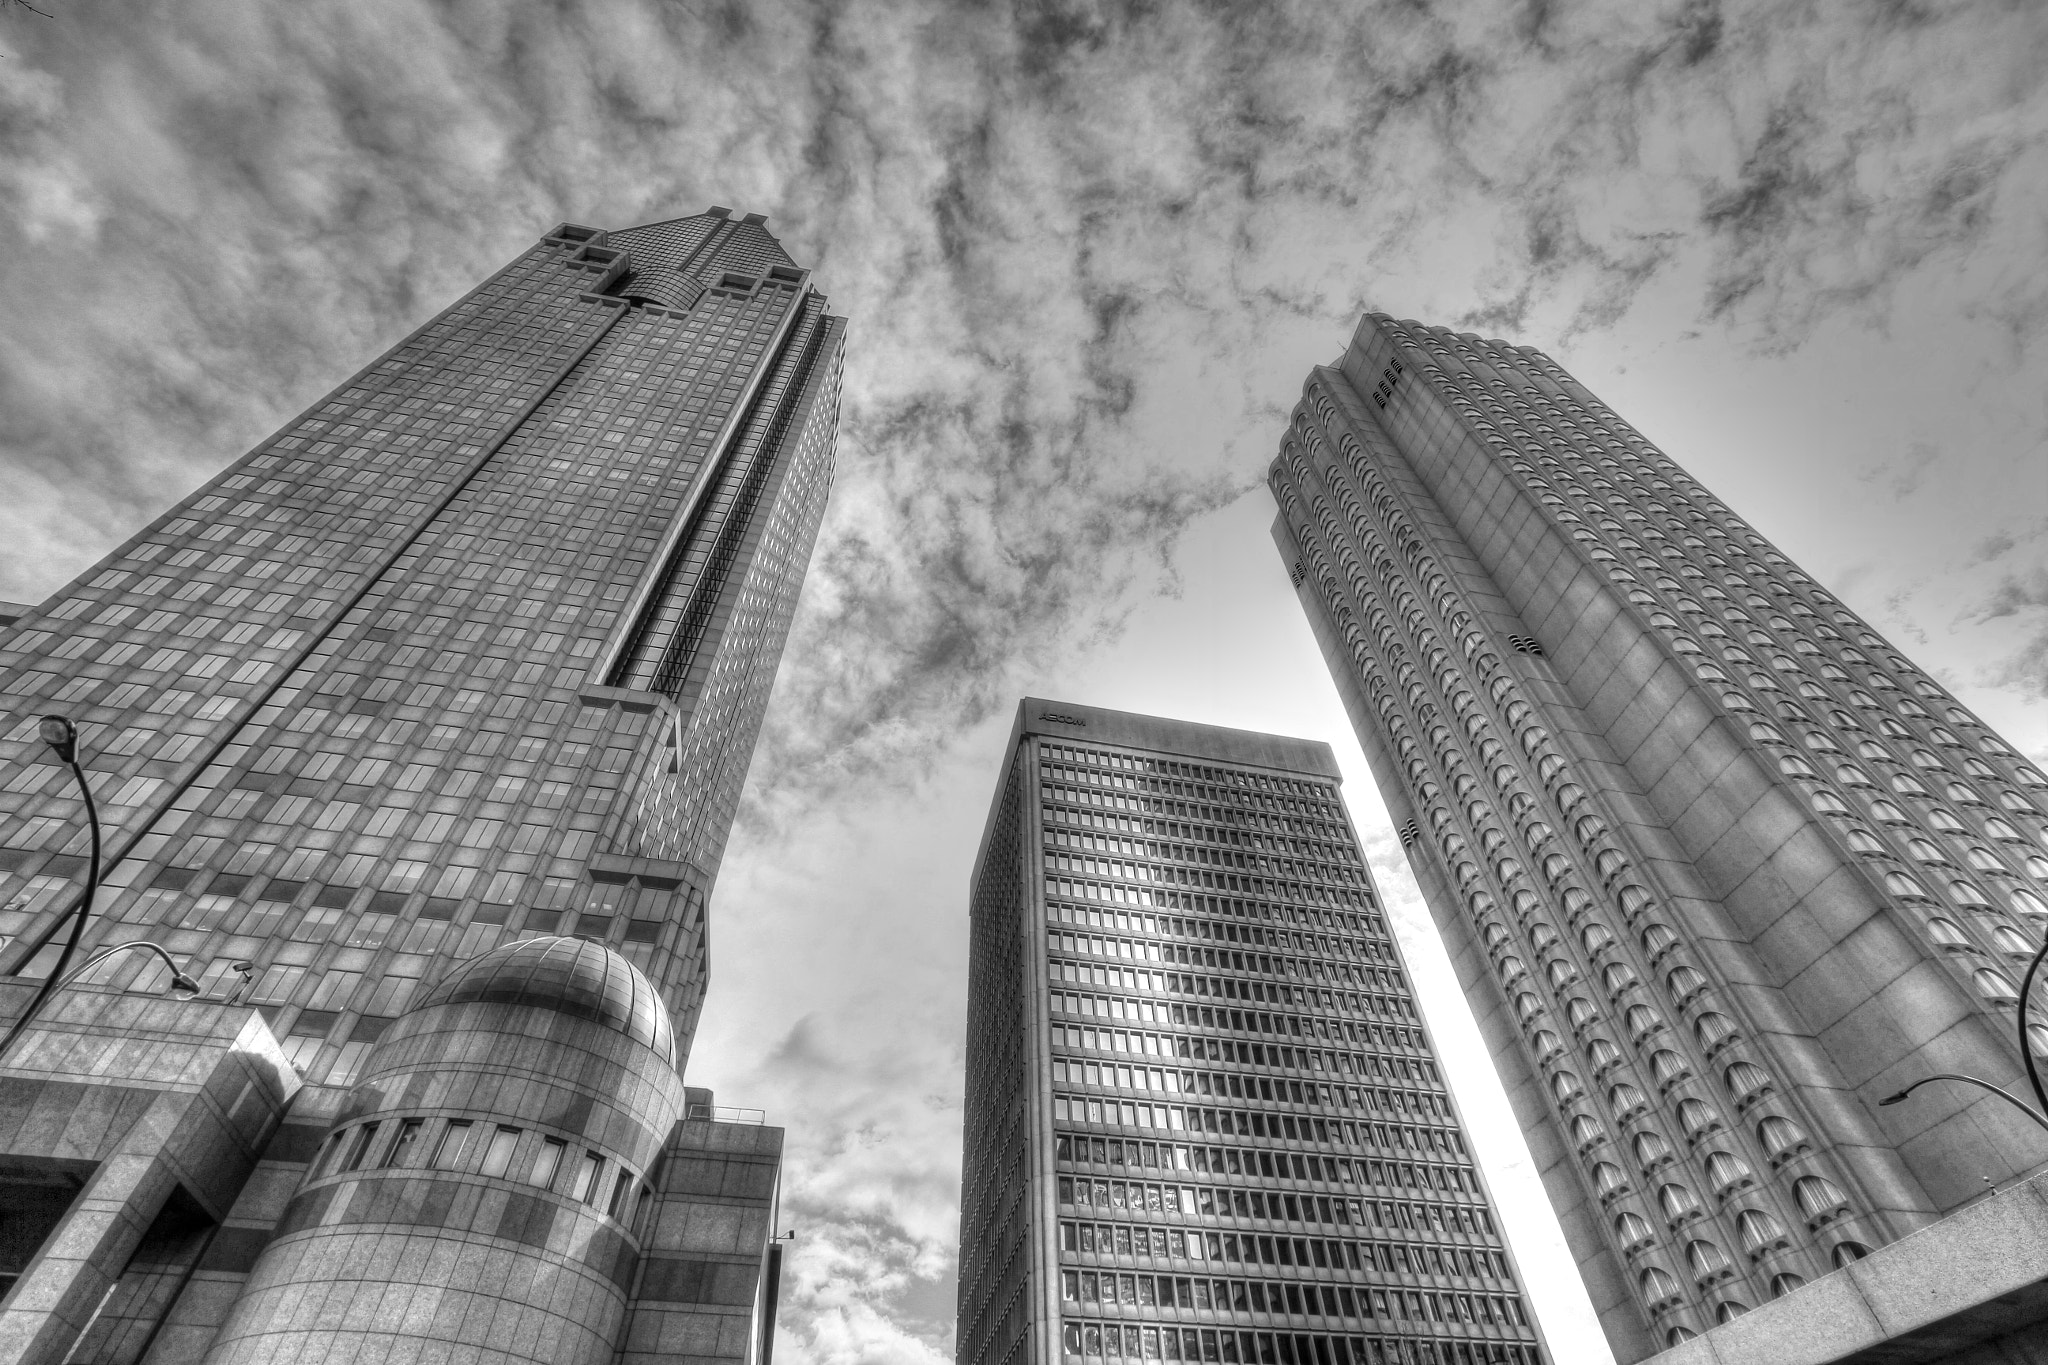 Photograph Montreal Skyscrapers by David Kajaks on 500px